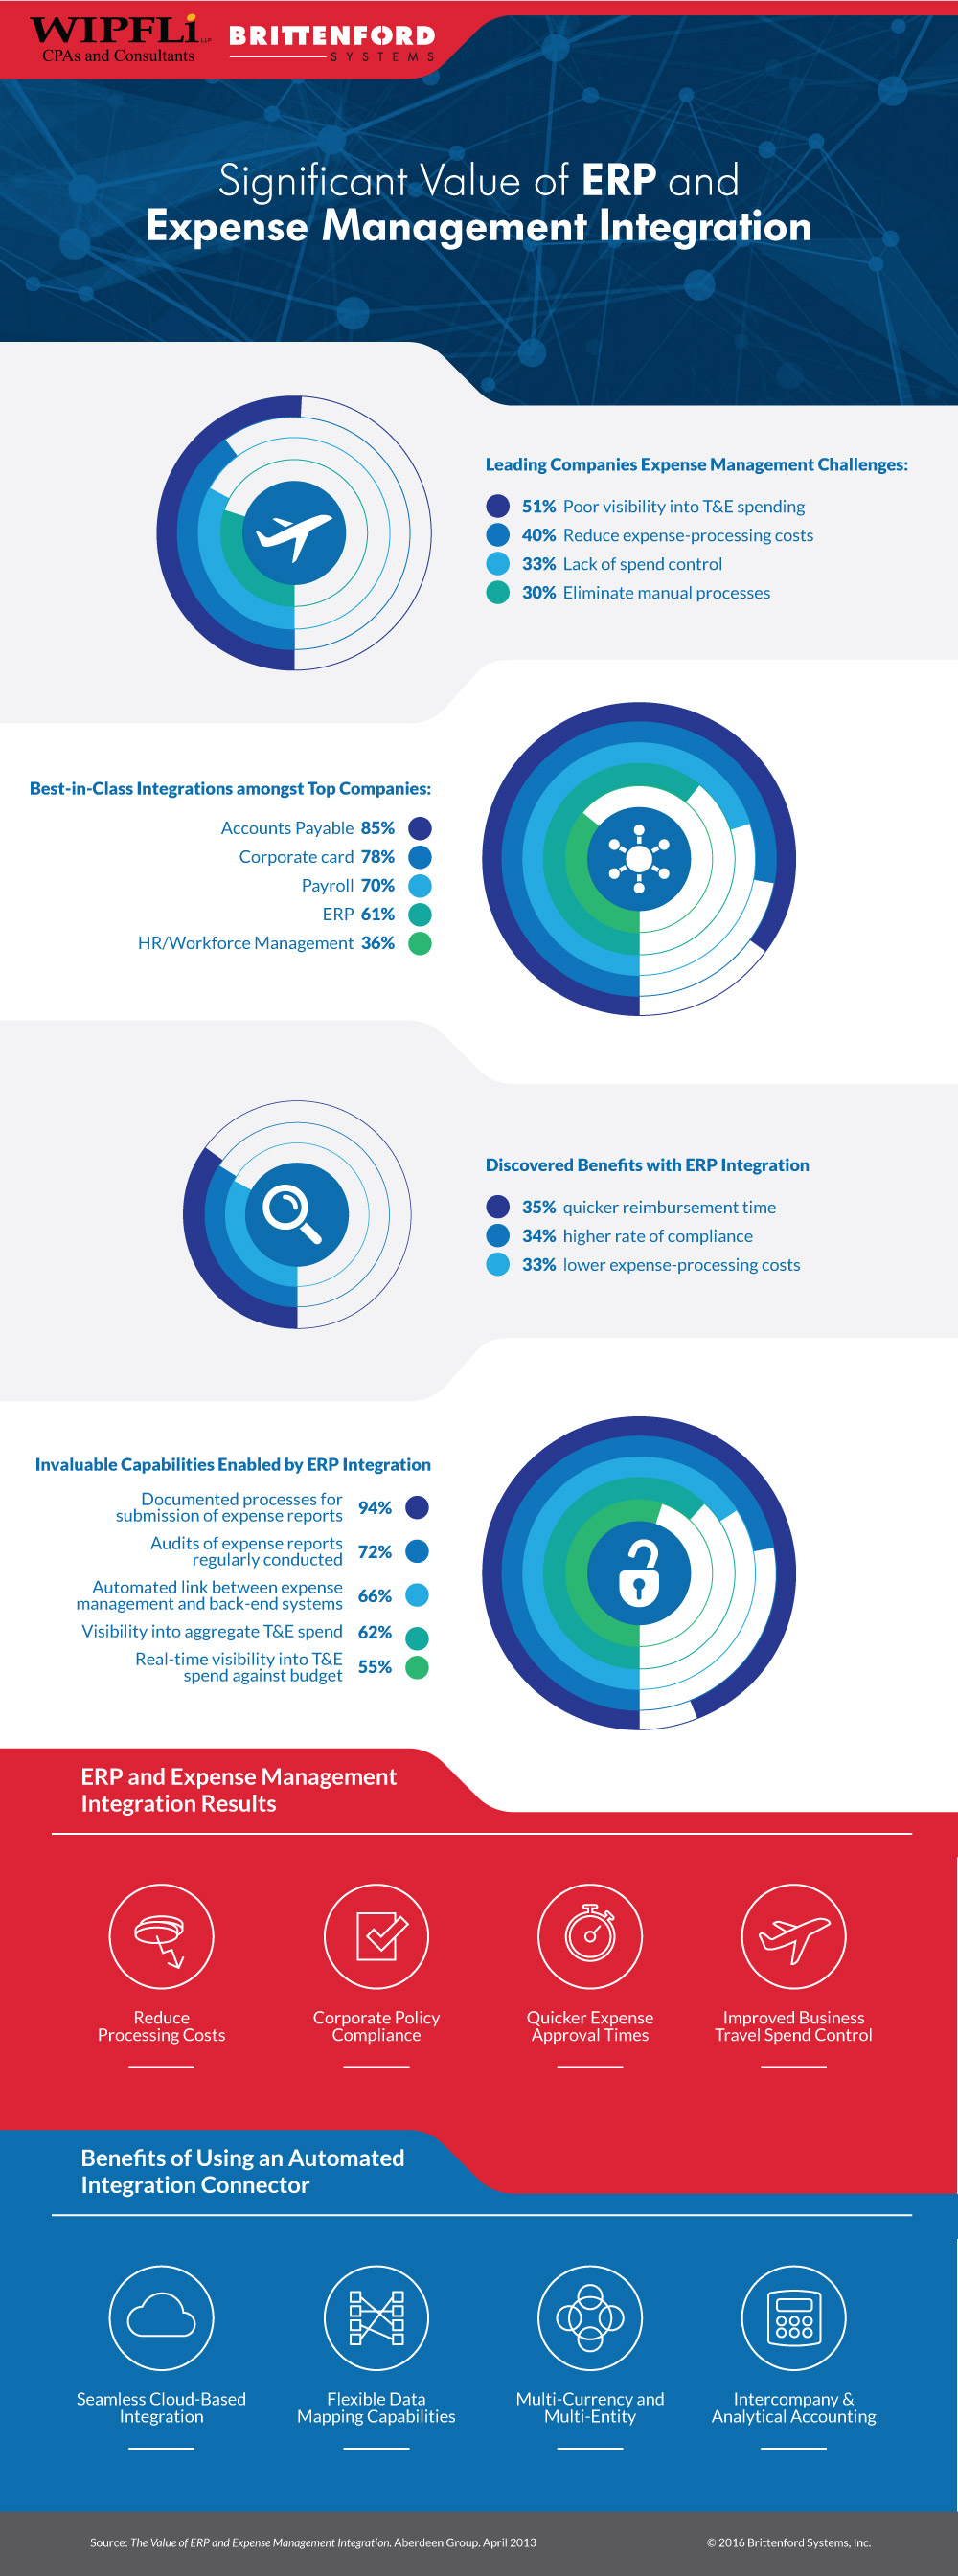 ERP and Expense Management Integration Infographic